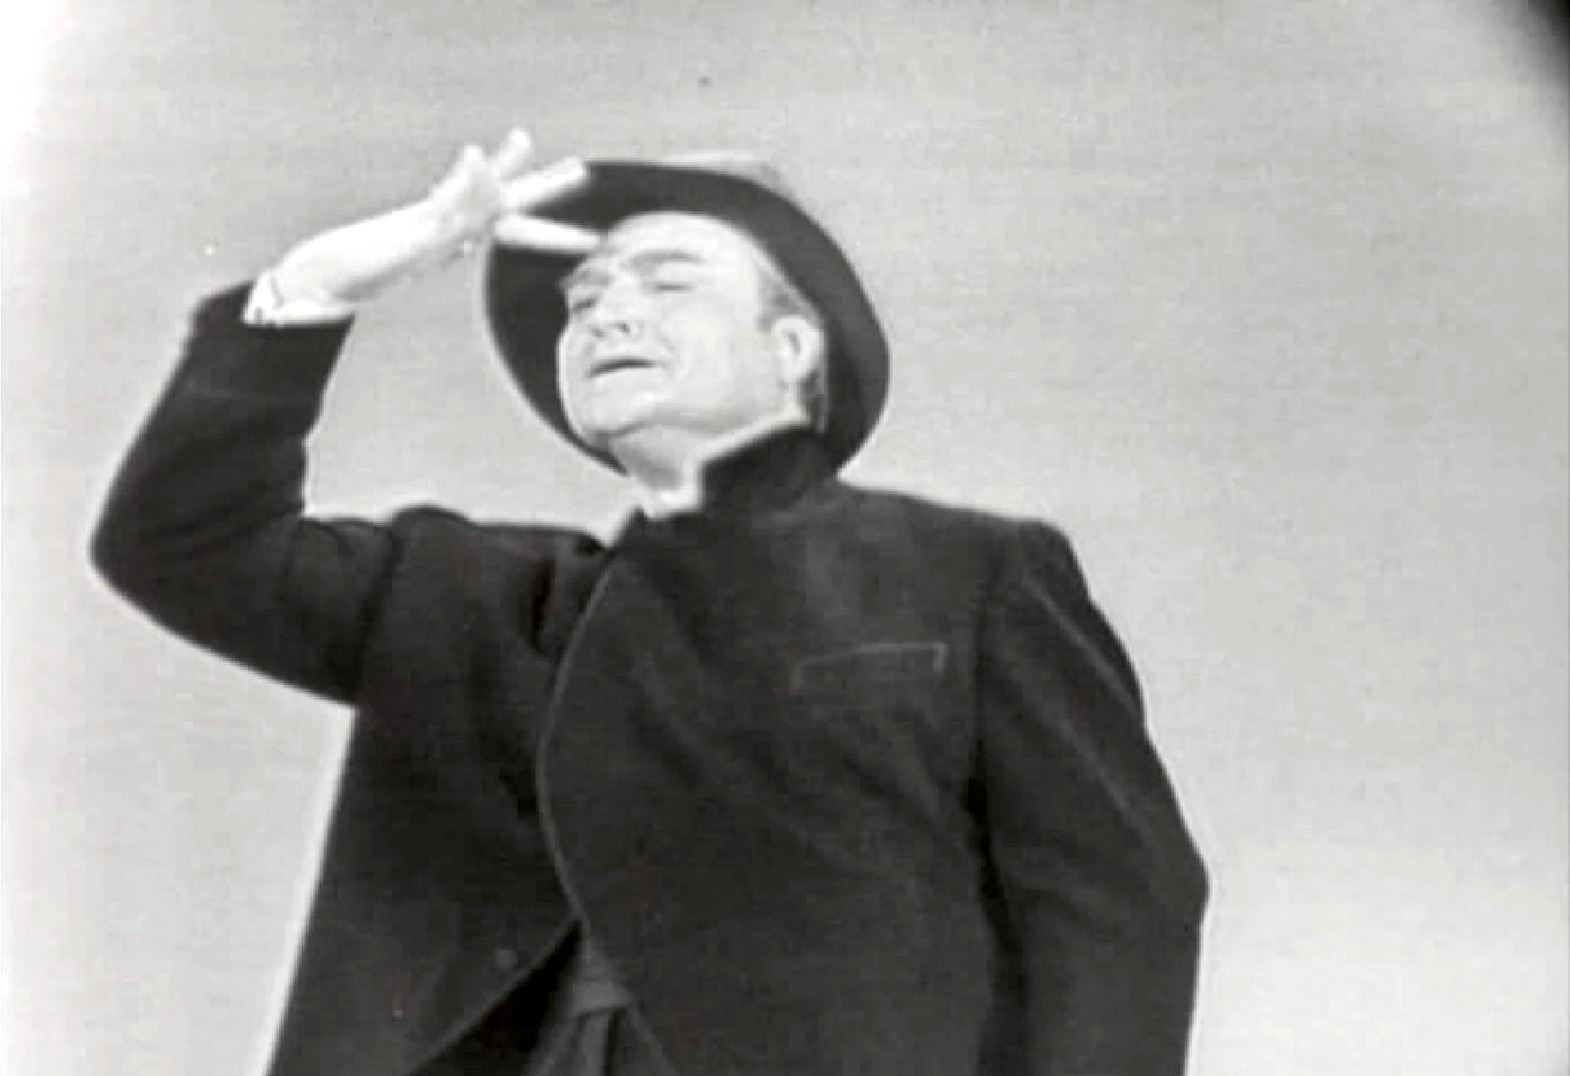 Laughter, the Universal Language - Red Skelton performing pantomime at the United Nations